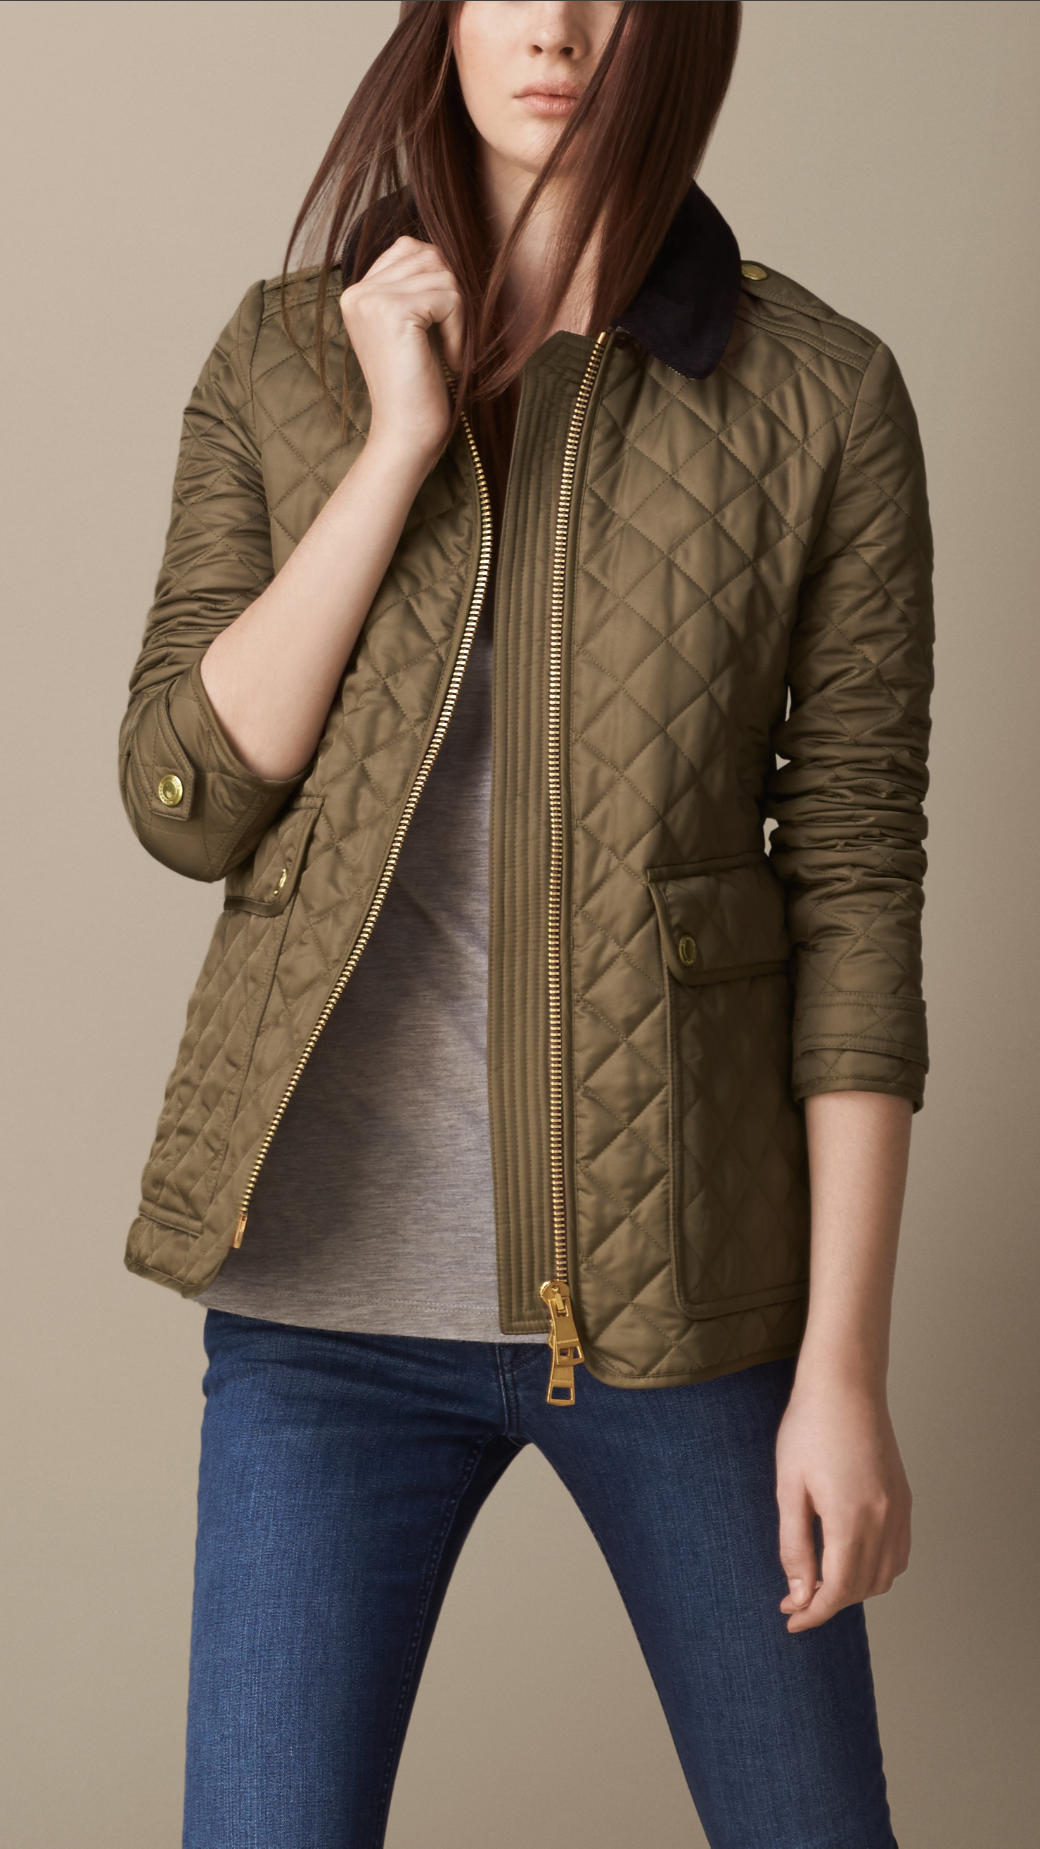 https://cdna.lystit.com/photos/2013/12/03/burberry-military-khaki-corduroy-collar-quilted-jacket-product-1-15766950-050929027.jpeg